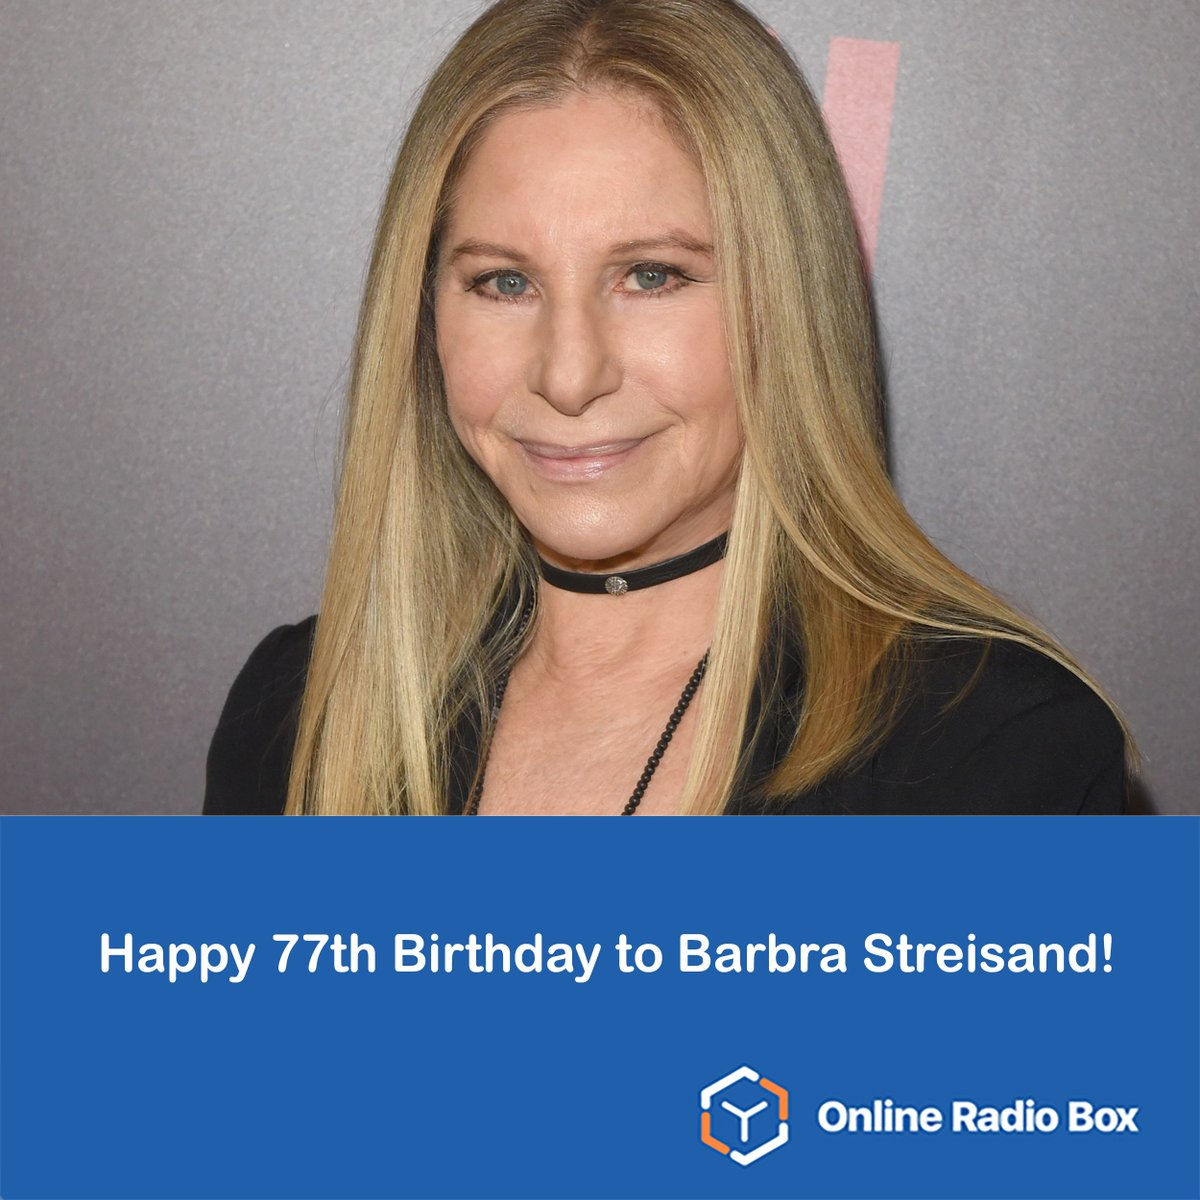 #BarbraStreisand has sold over 245 million records and won 10 Grammy Awards, including an Album of the Year Award for The Barbra Streisand Album in 1963. #Listen Barbra Streisand at #onlineradiobox.com Top 5 stations where you can listen her #besthits:   https:// is.gd/h0K6nf  &nbsp;  <br>http://pic.twitter.com/314qCoaVSQ